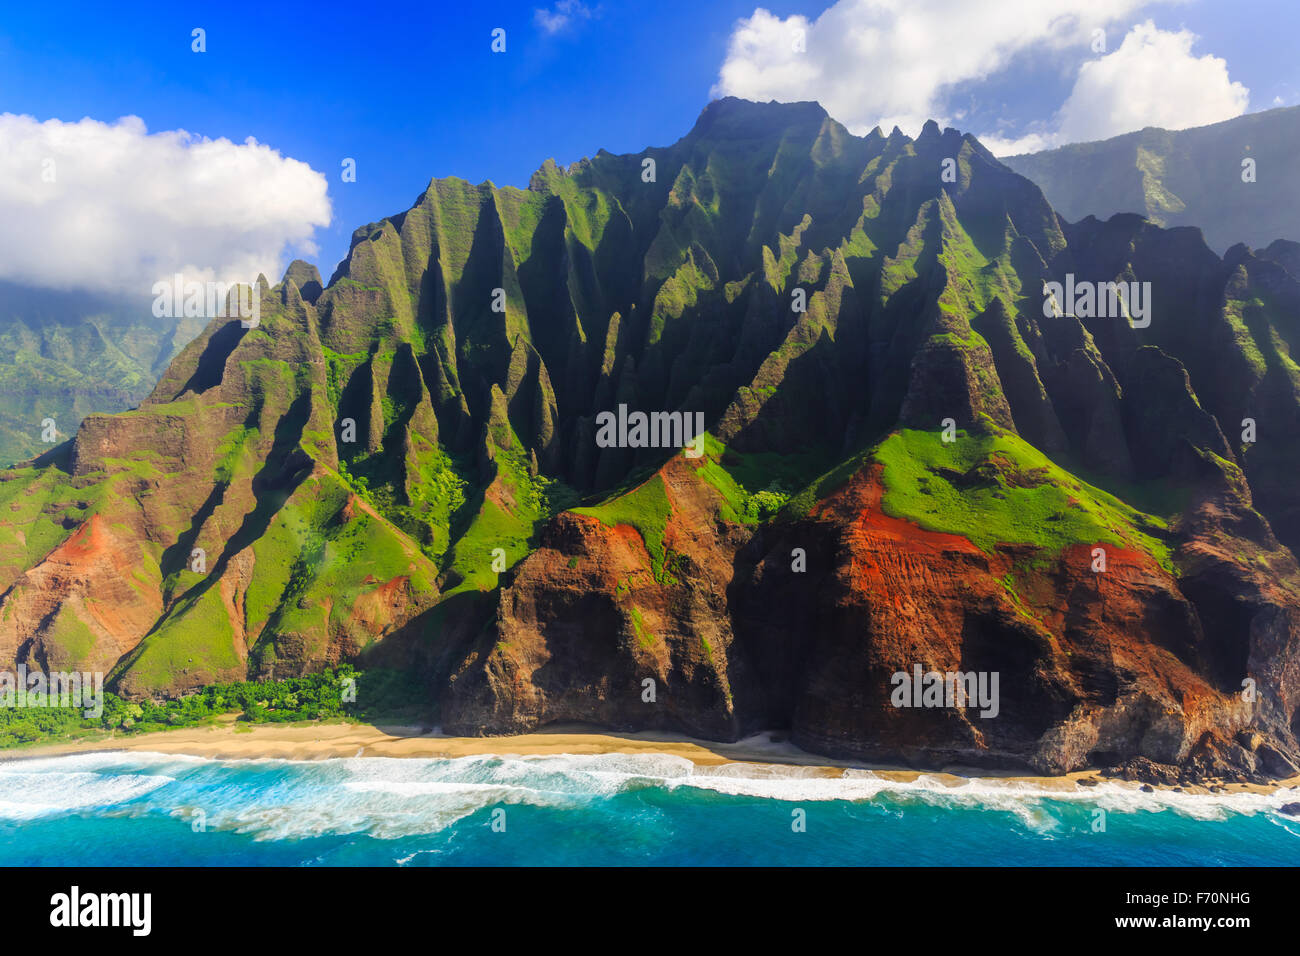 Vue aérienne de la spectaculaire côte de Na Pali, Kauai, Hawaii Photo Stock